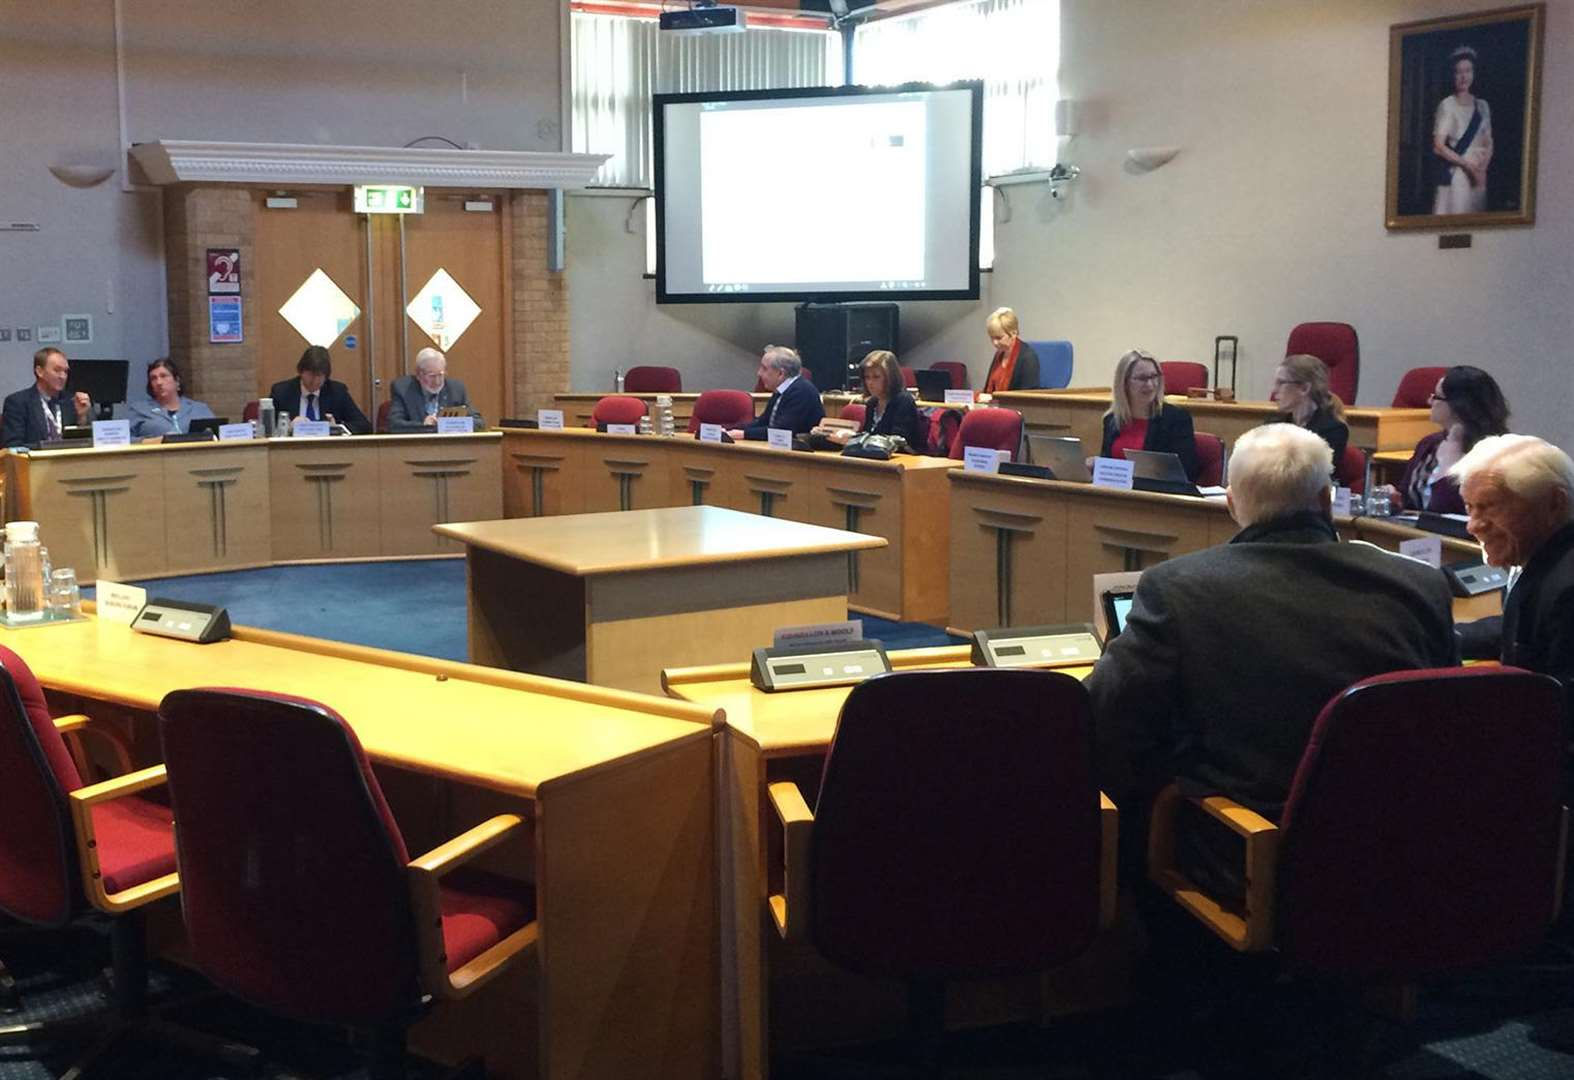 South Holland District Council to raise council tax by 2.91%